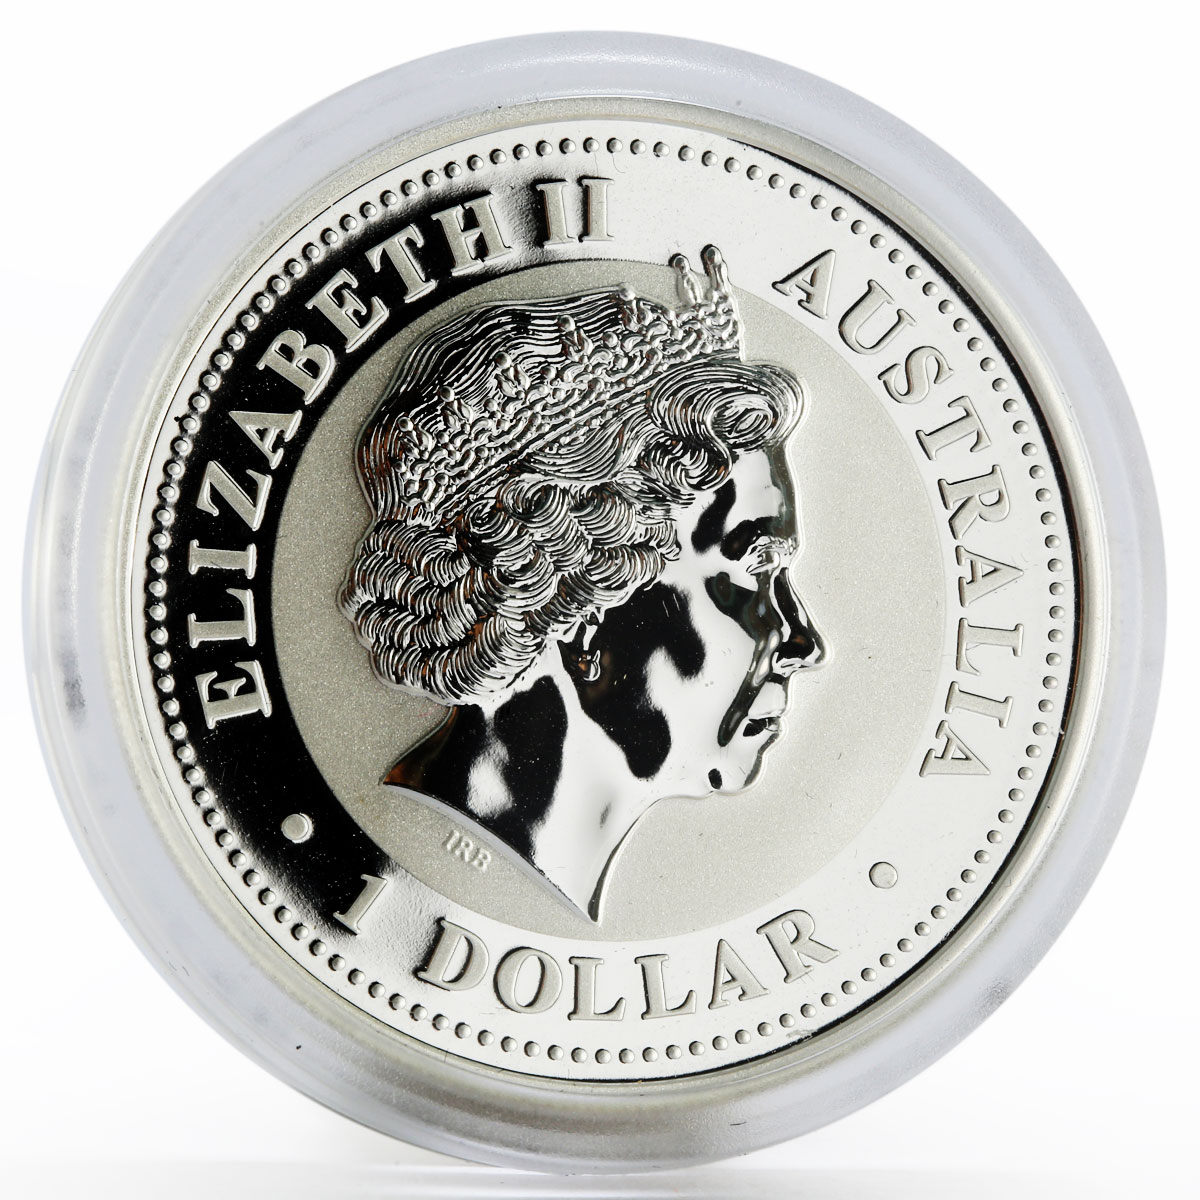 Australia 1 dollar Year of the Pig Lunar Series I gilded silver coin 2007